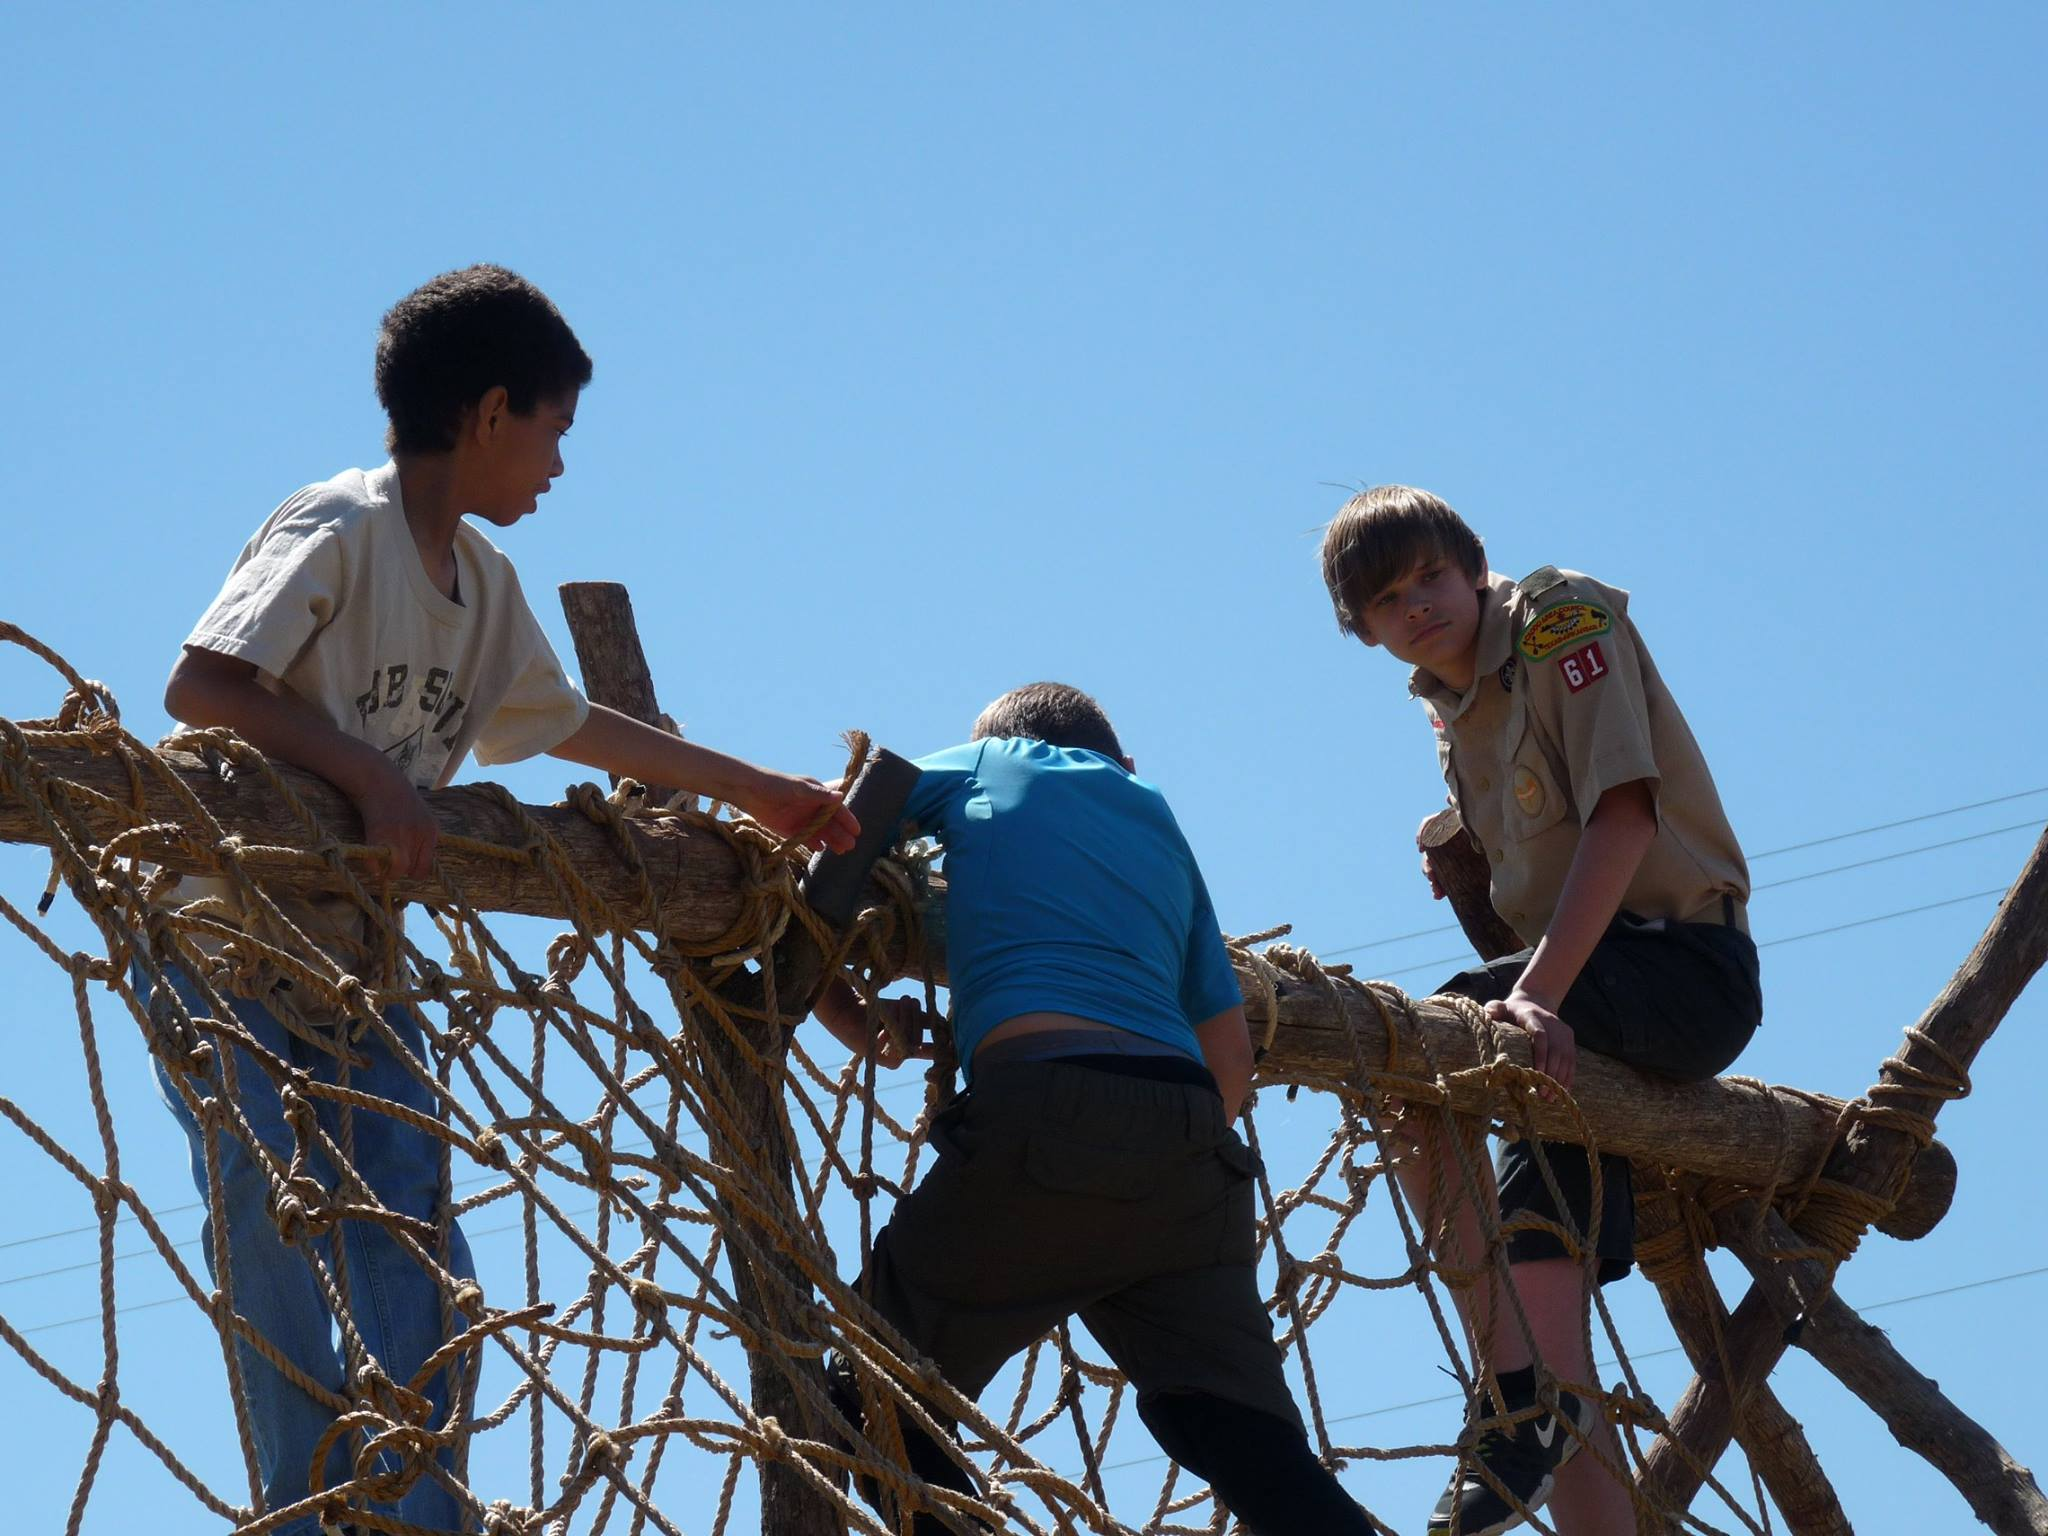 Rope Ladder with climbers